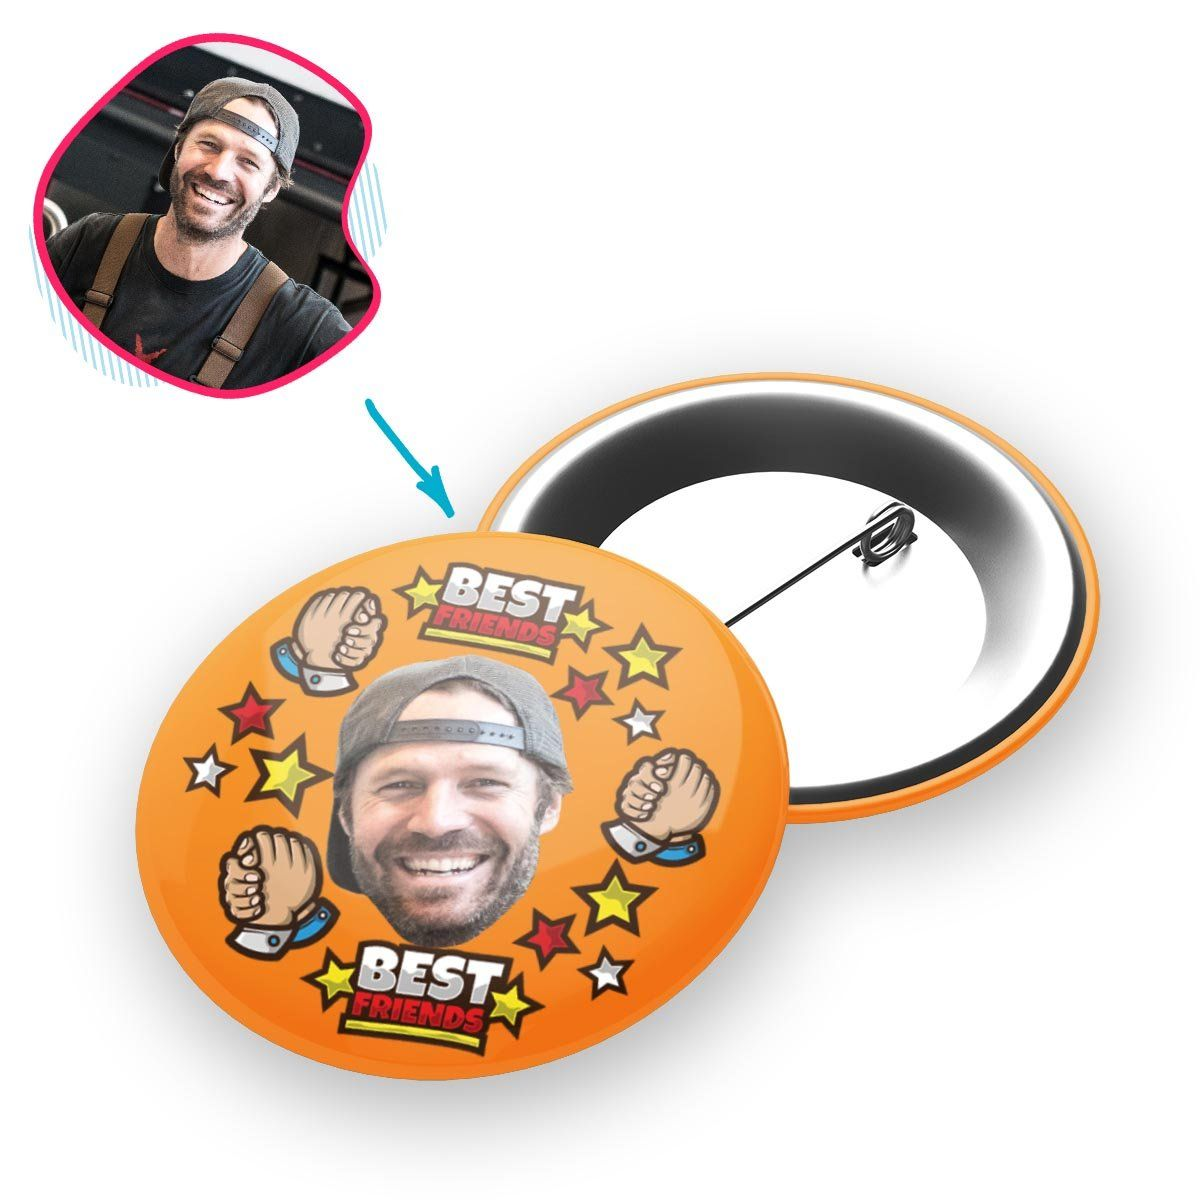 orange Best Friends pin personalized with photo of face printed on it